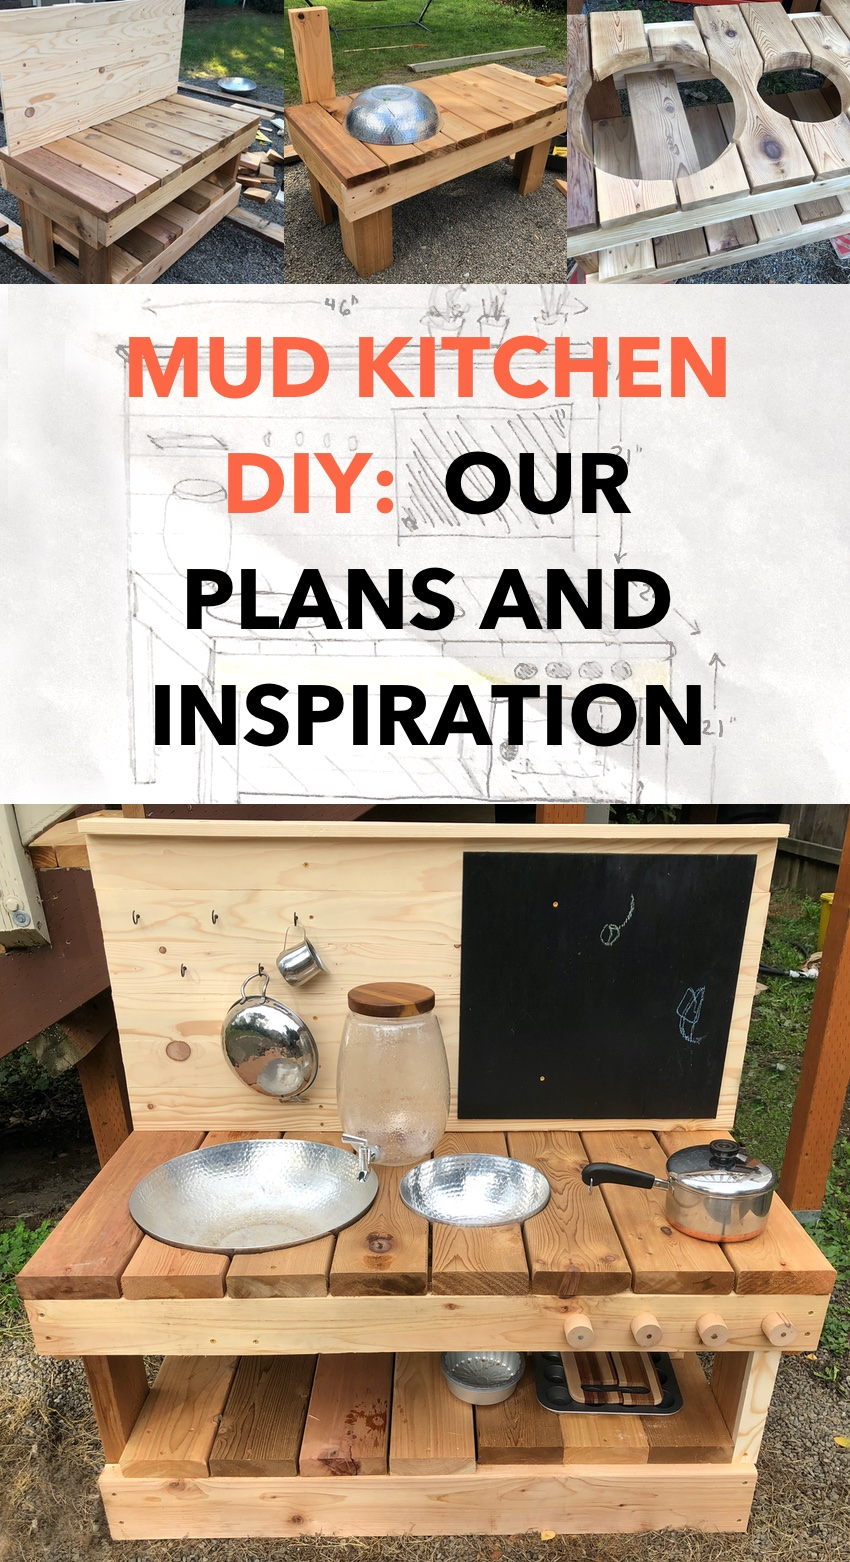 Mud Kitchen DIY: Our Plans Inspiration - wooden mud kitchen with sinks, shelf, chalkboard, water, pots and pans outside in a backyard